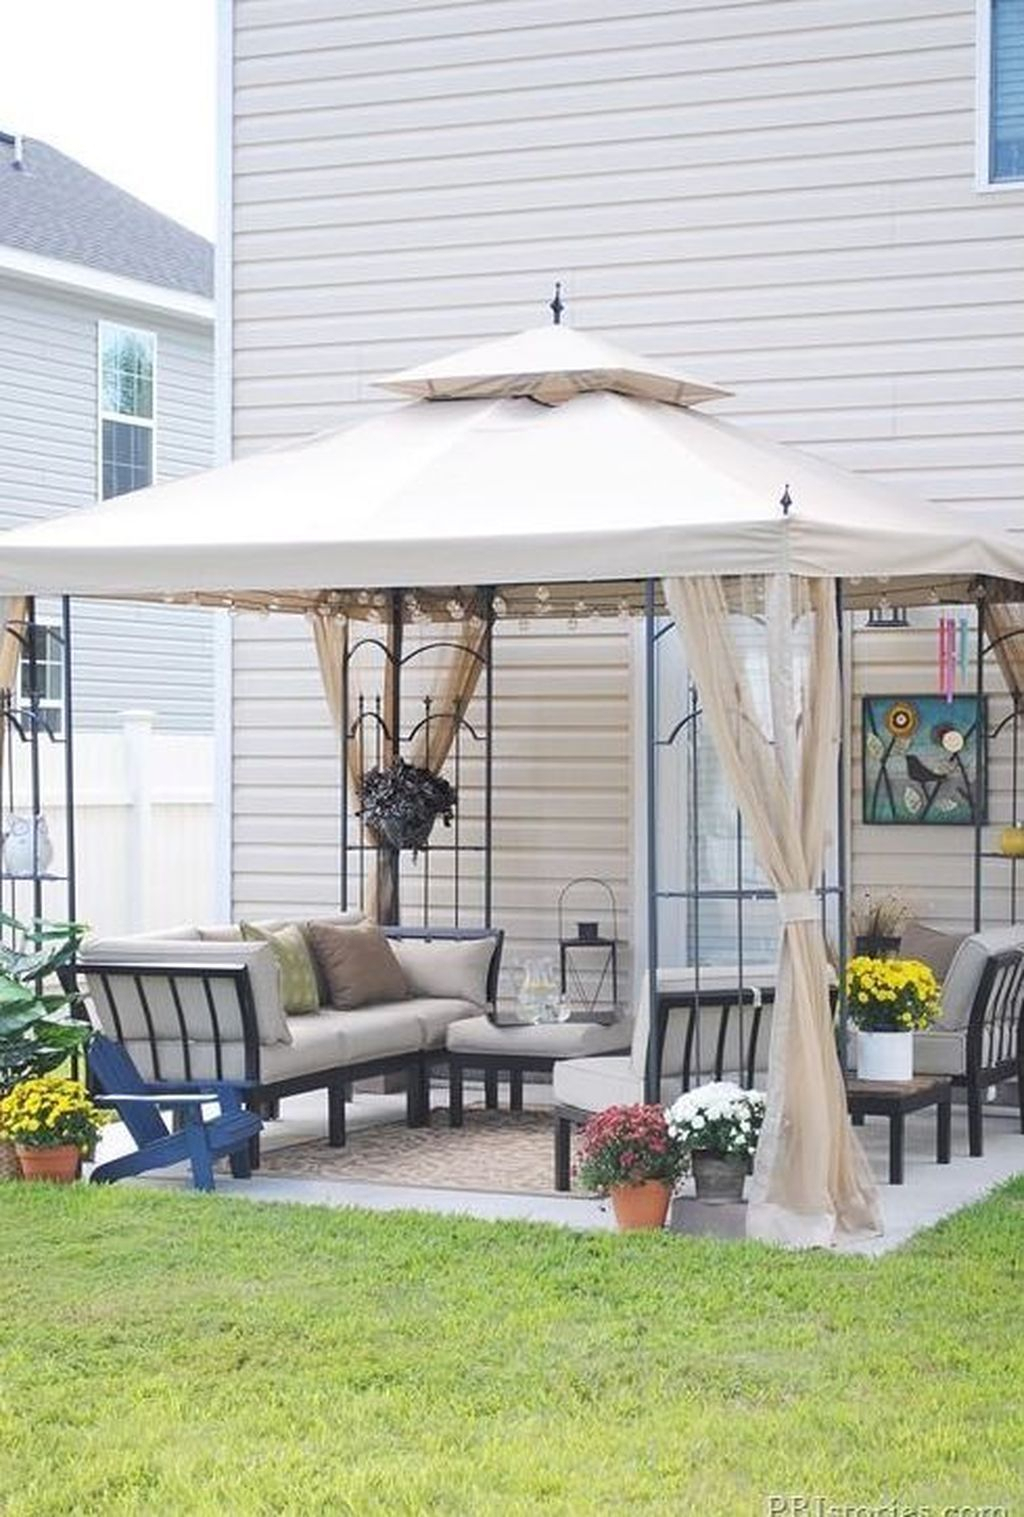 20+ Beautiful Small Backyard Makeover S Ideas On A Budget Pertaining To A4 Ft Cedar Pergola Swings (Image 3 of 25)